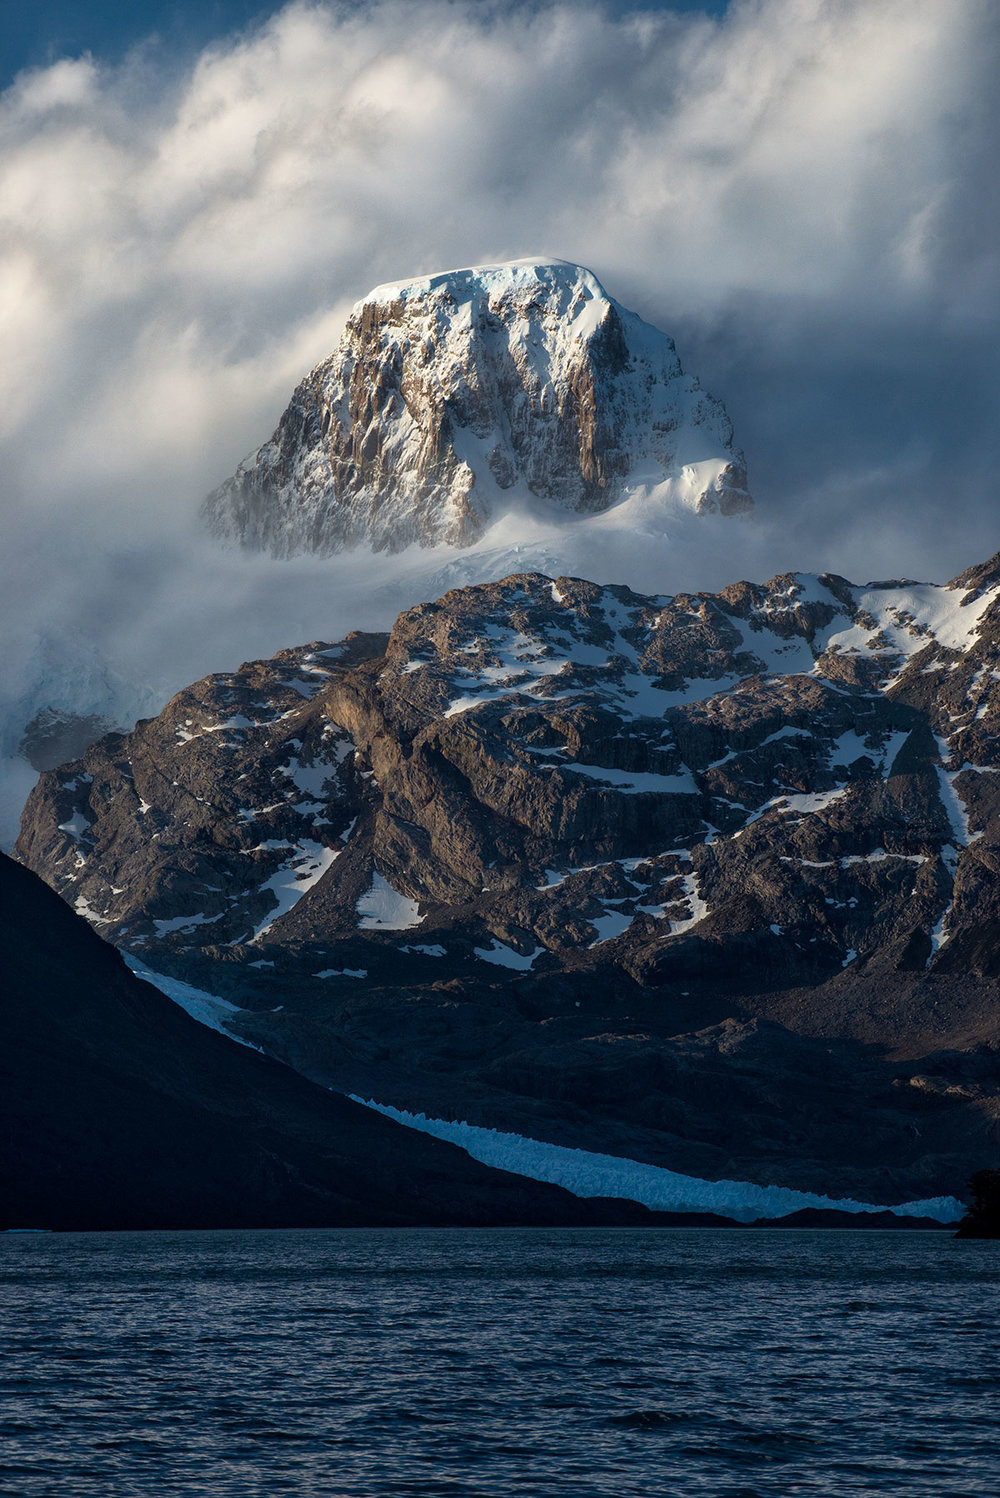 austin-trigg-patagonia-adventure-Cube-Mountain-clouds-torres-del-paine.jpg